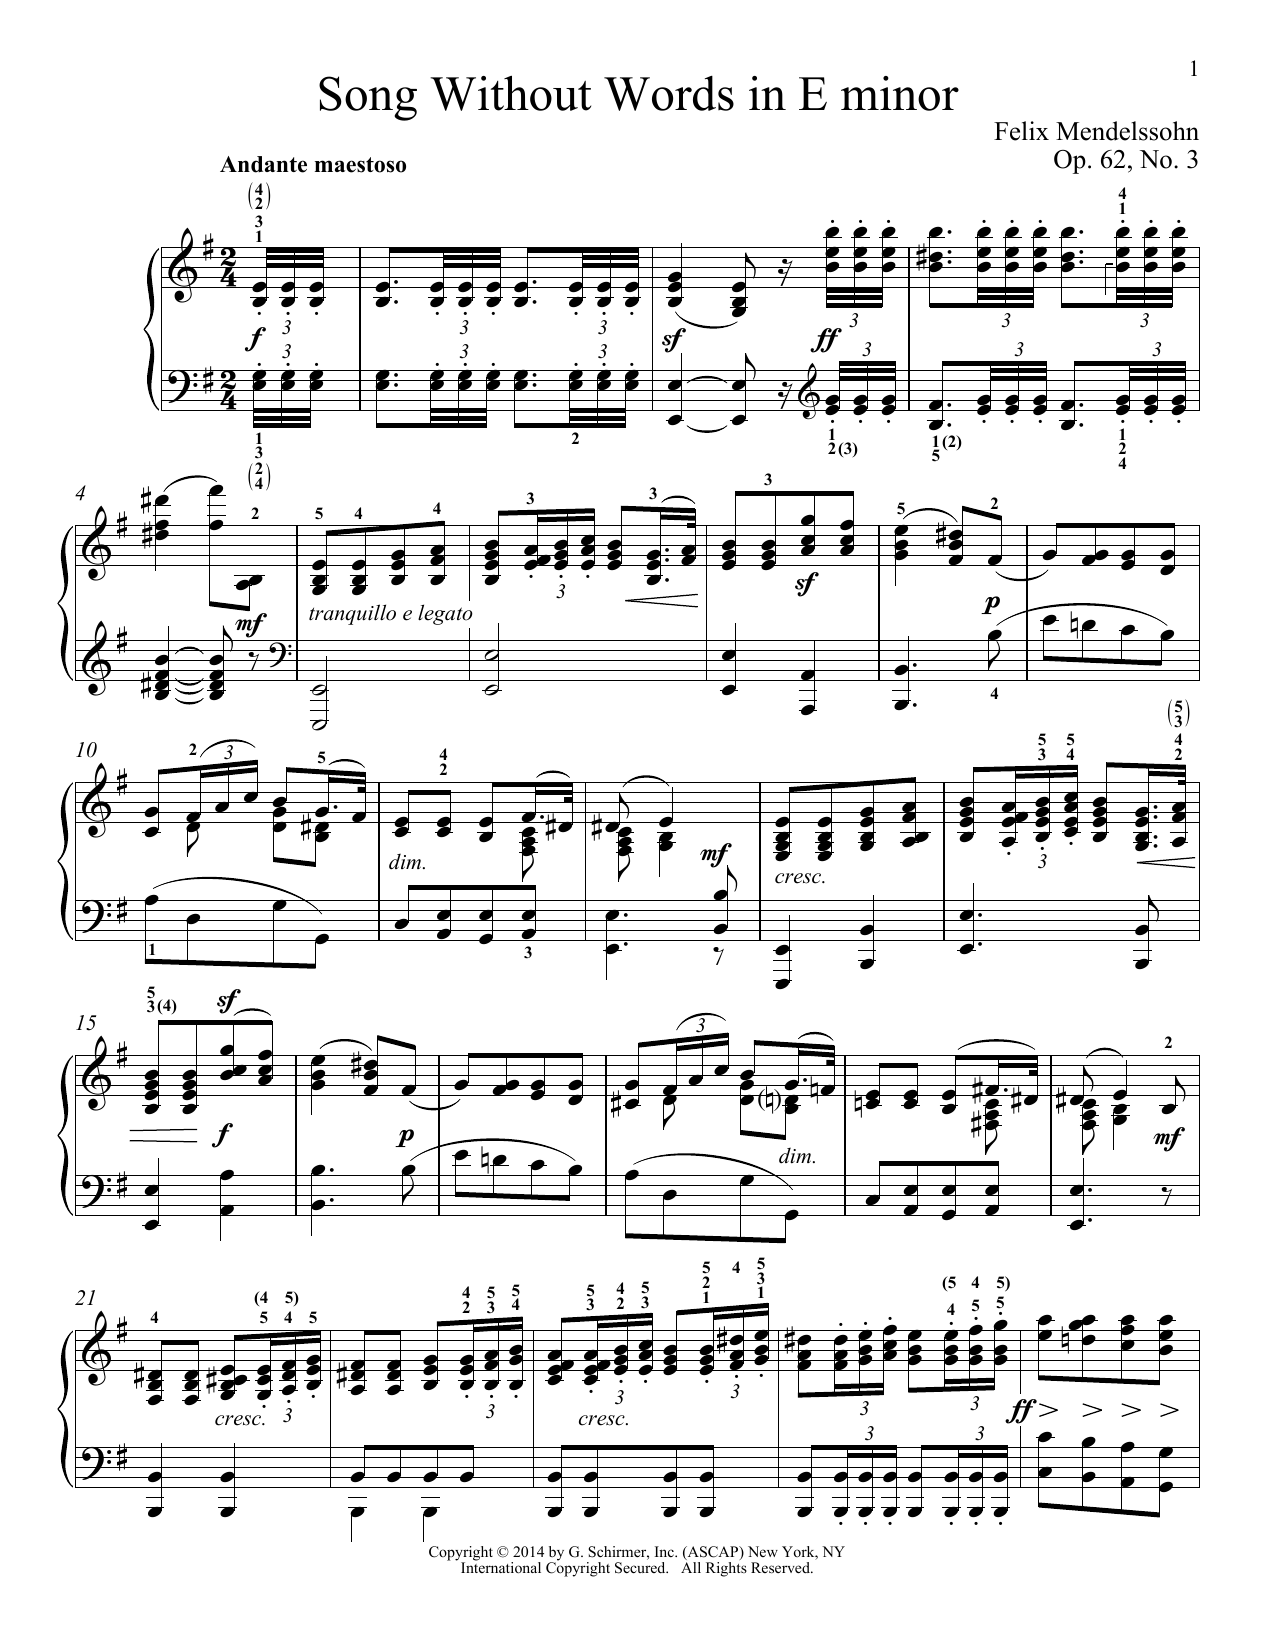 Partition piano Song Without Words In E Minor, Op. 52, No. 3 de Felix Mendelssohn - Piano Solo